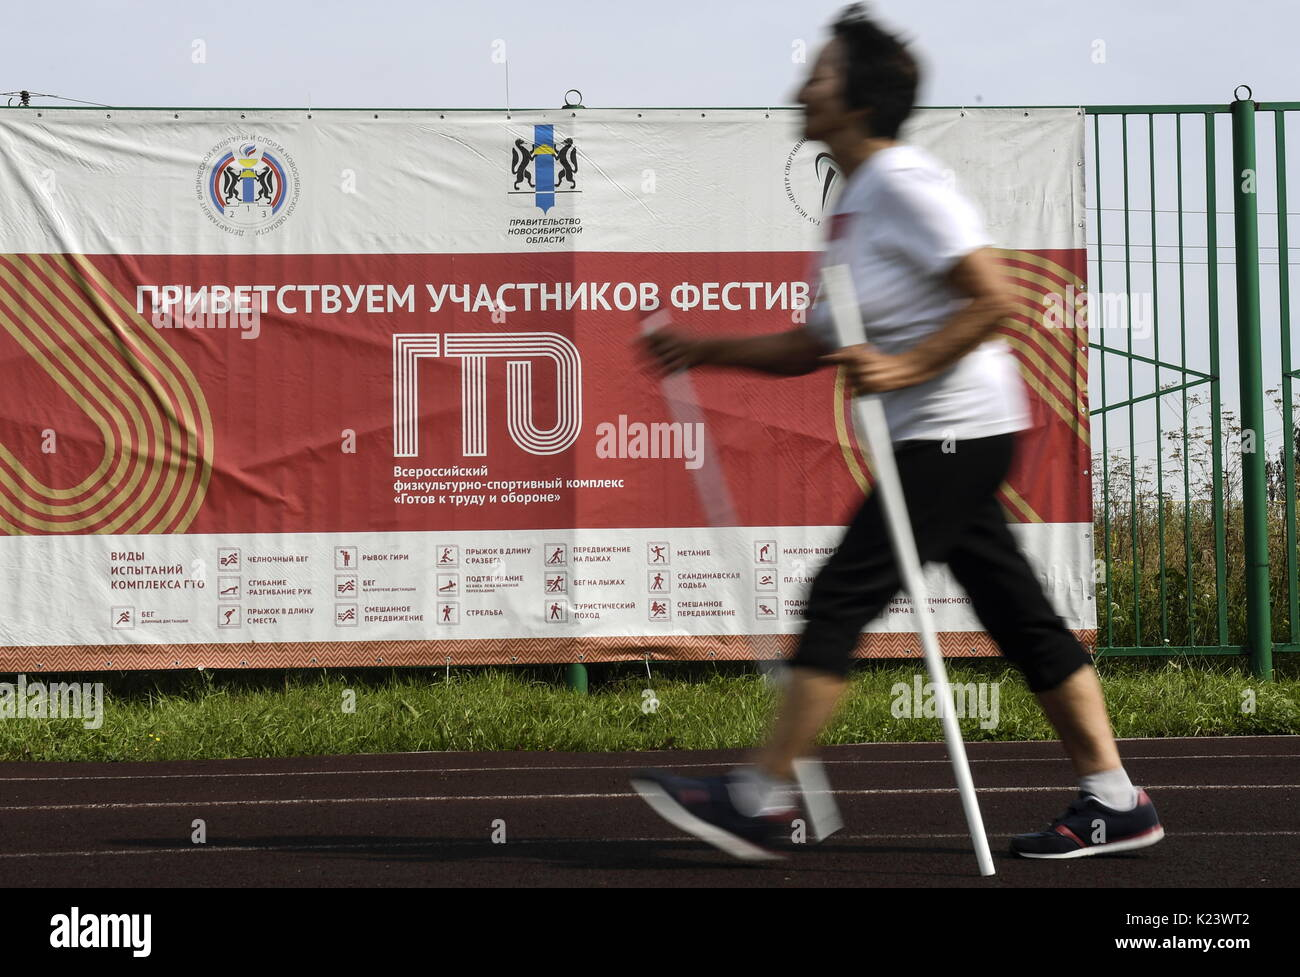 Novosibirsk Region, Russia. 30th Aug, 2017. An elderly woman Nordic walking as she takes Soviet-era physical fitness tests in the village of Kochenevo. A fitness programme 'Ready for Labour and Defence' [known by Russian acronym GTO] introduced by Joseph Stalin in the 1930s to get the nation into shape has been recently revived in Russia. Credit: Kirill Kukhmar/TASS/Alamy Live News - Stock Image